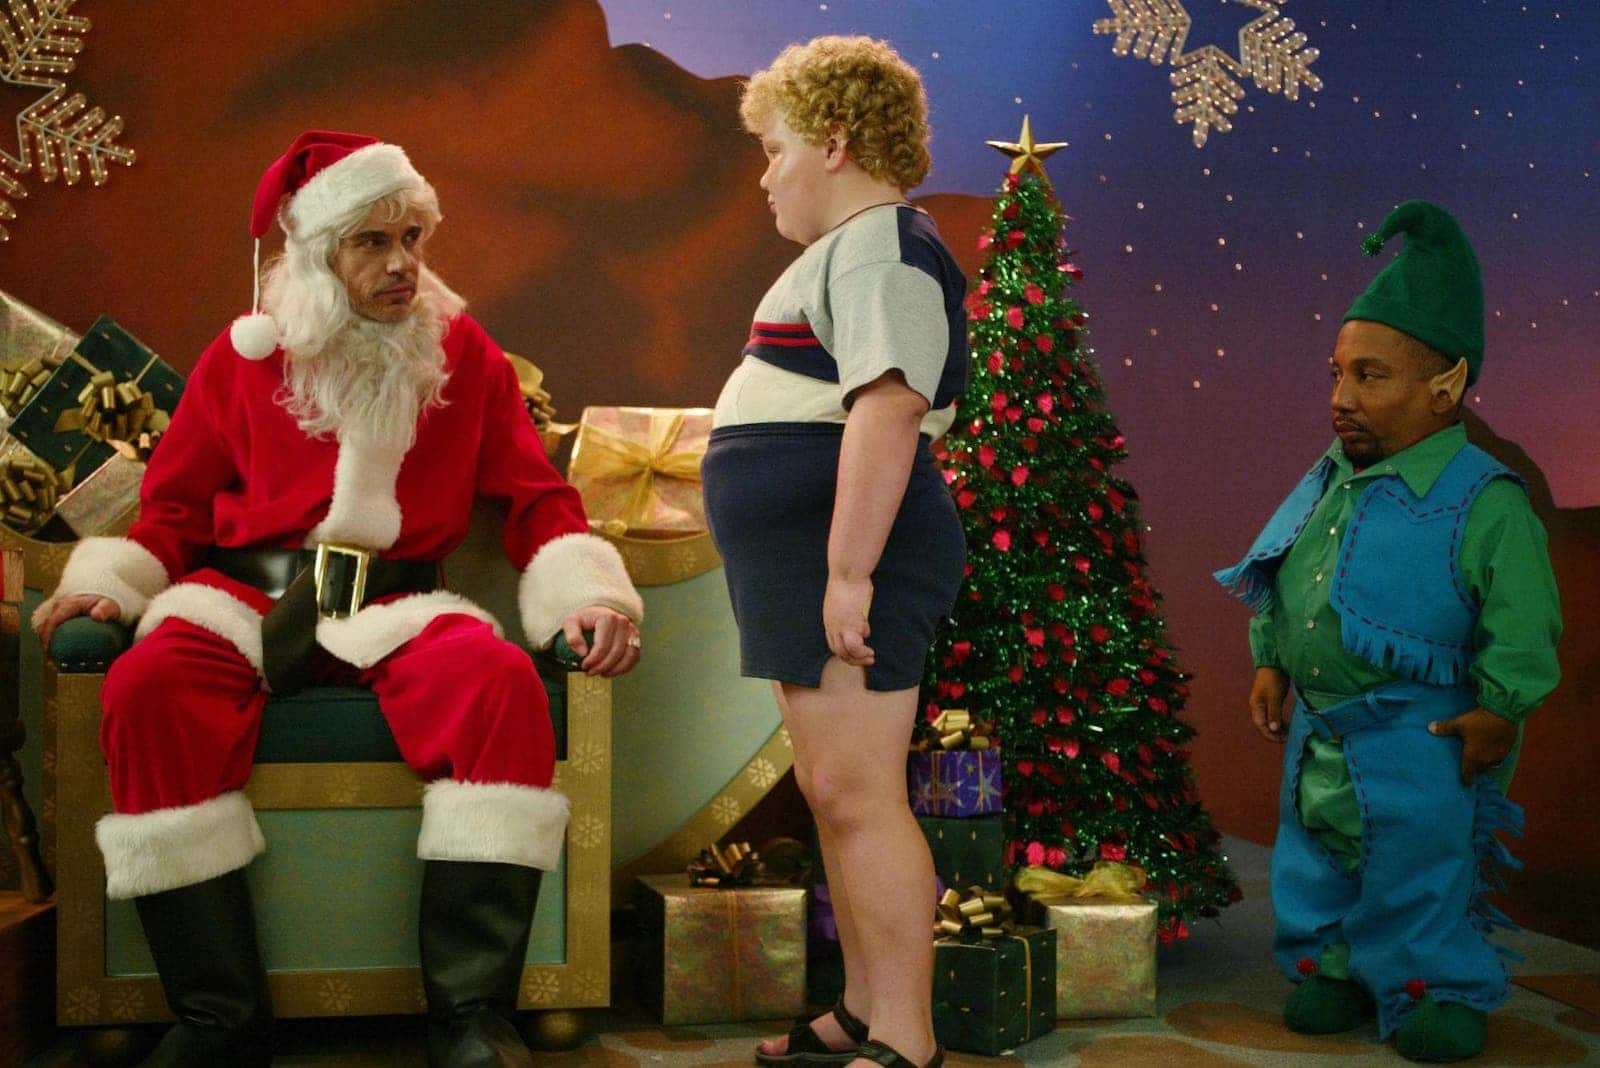 Best Comedy Movies - Bad Santa